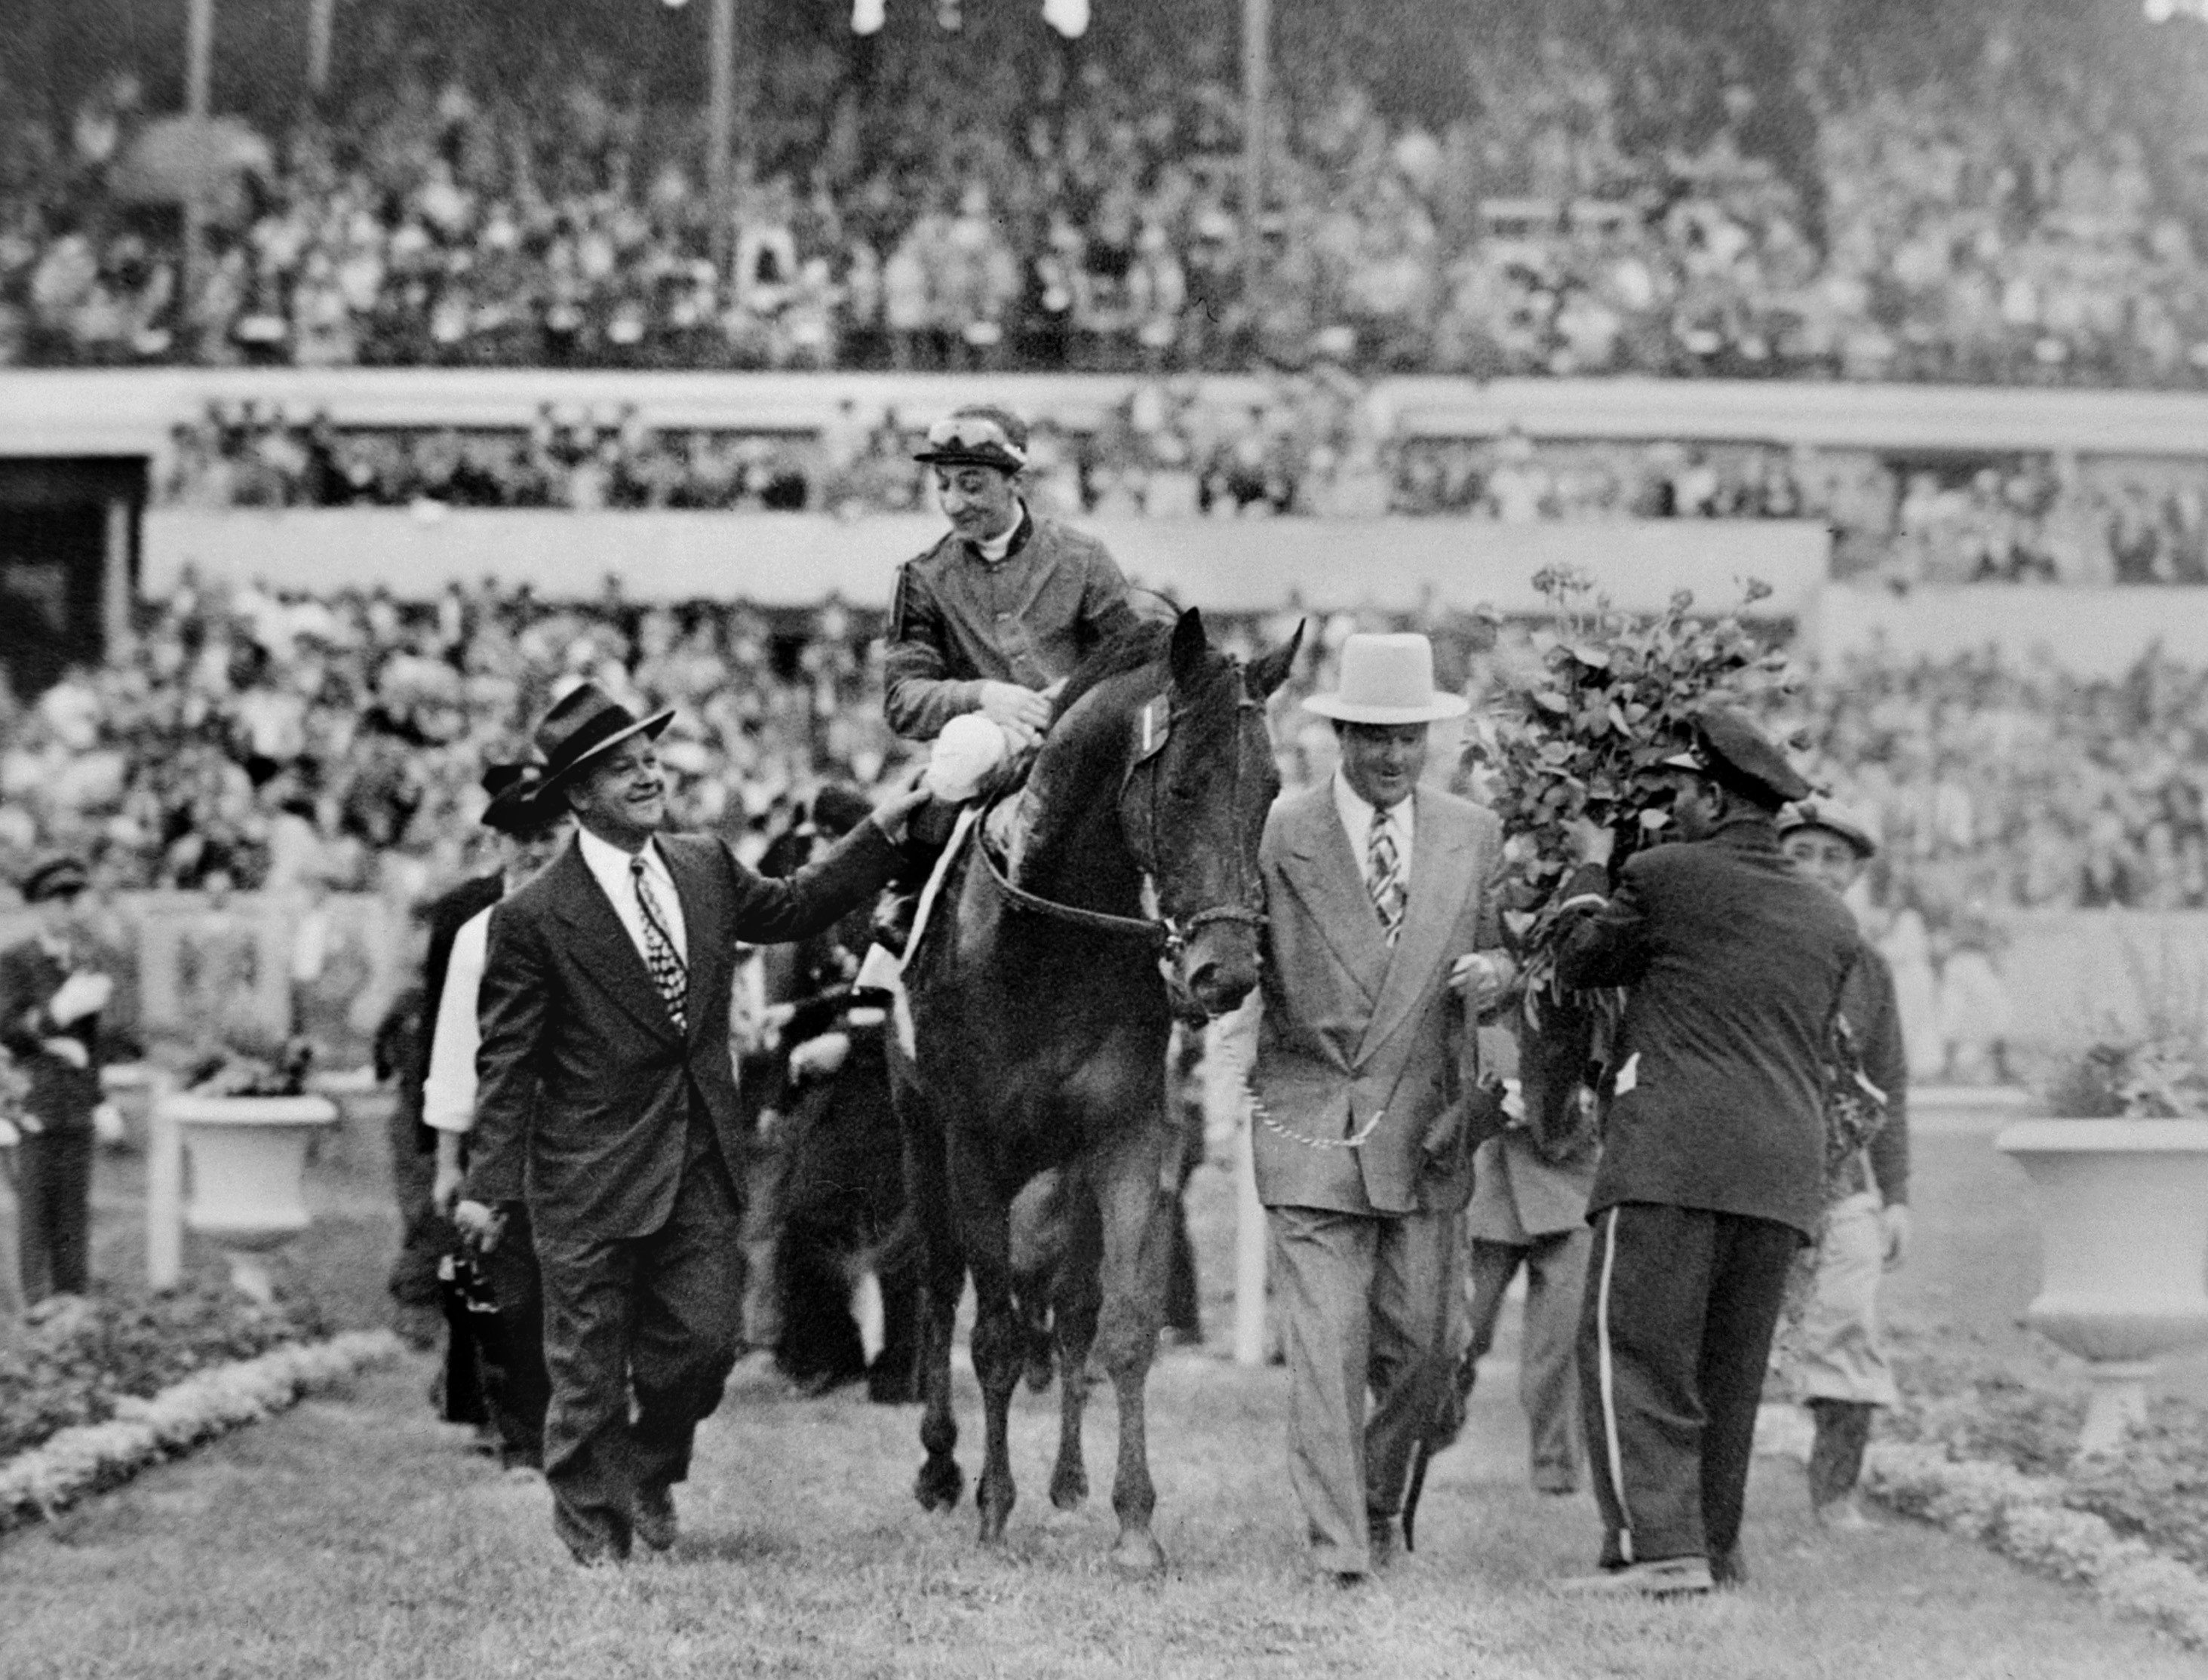 Arcaro on Citation after 1948 KY Derby win, with Ben Jones & H.A. Jimmy Jones